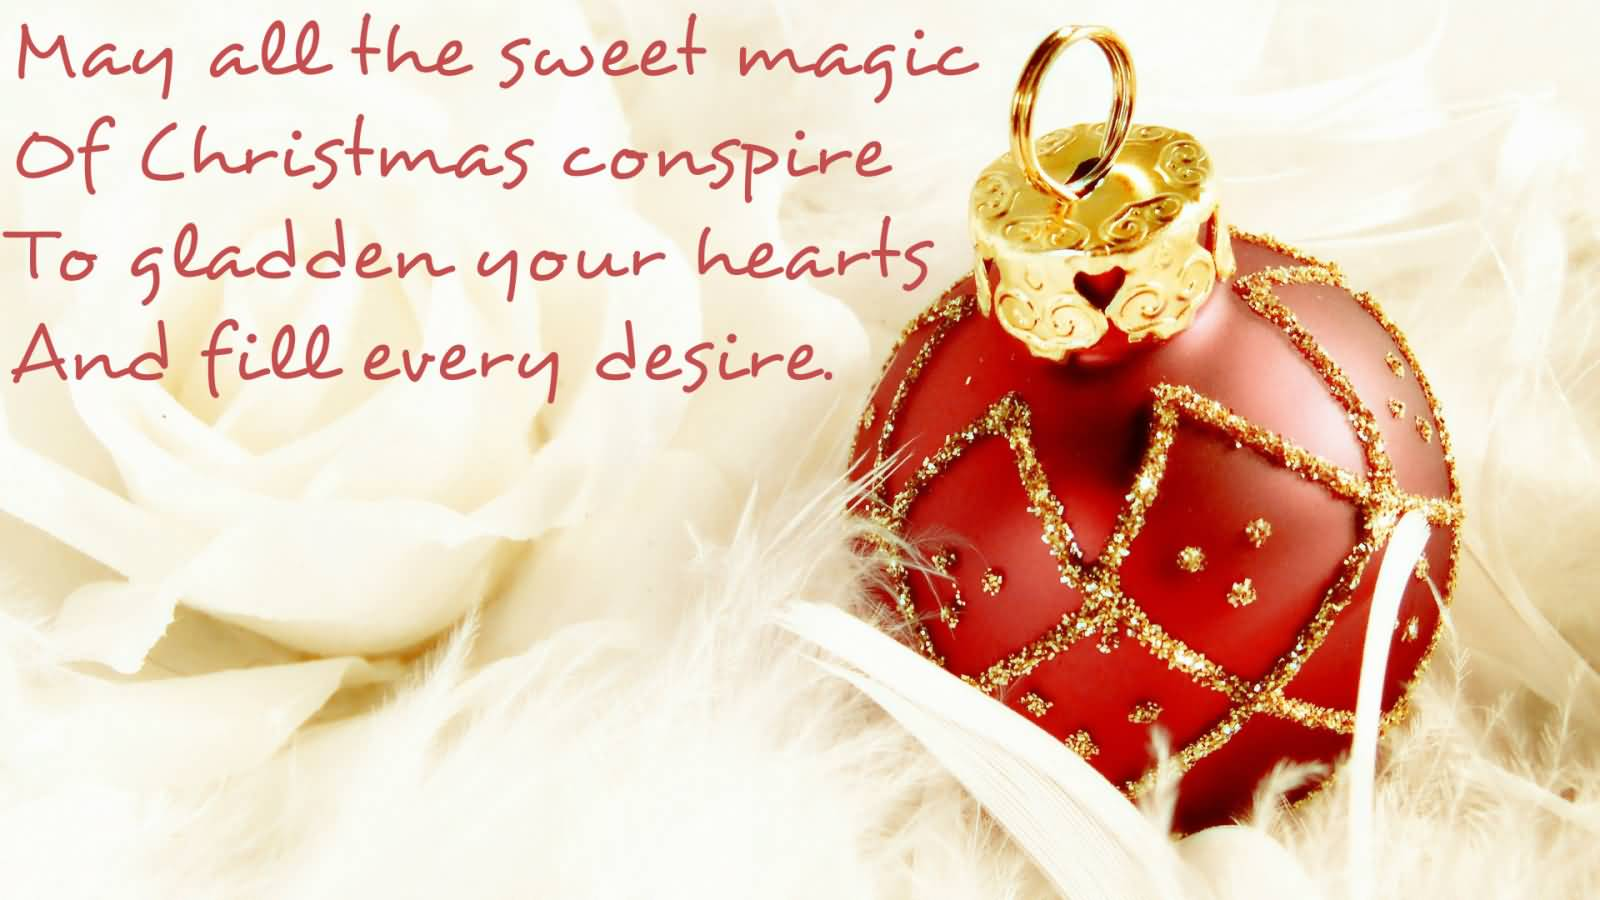 may all the sweet magic of christmas conspire to gladden your hearts and fill every desire merry christmas